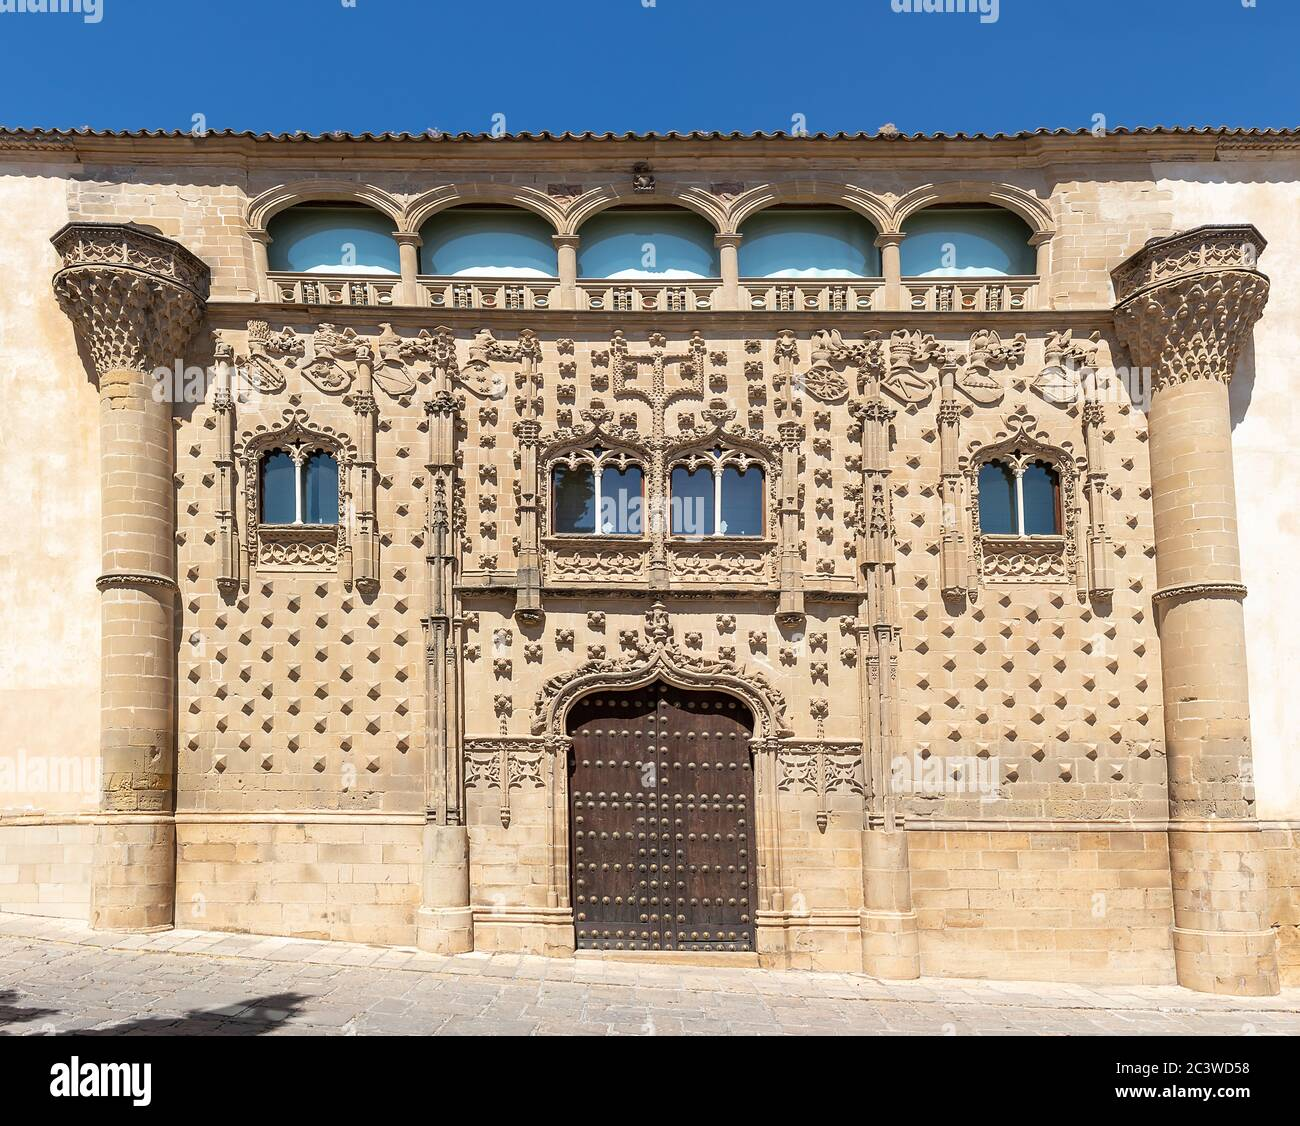 abalquinto Palace in Baeza. Renaissance city in the province of Jaen. World heritage site. Andalusia, Spain. Now is International Universit Stock Photo